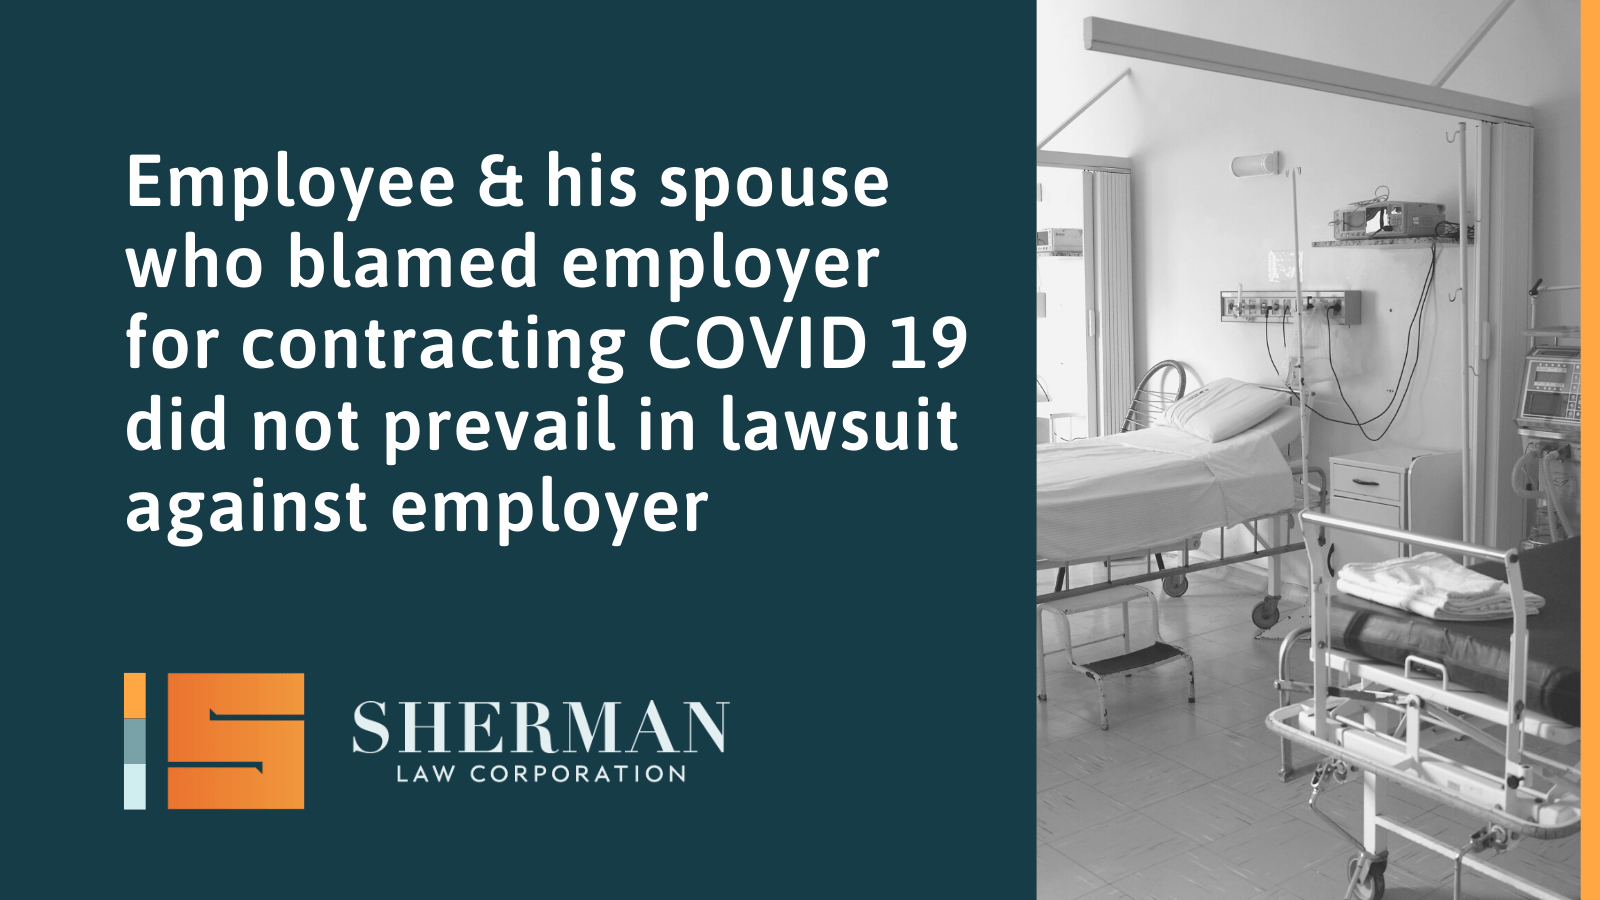 Employee & his spouse who blamed employer for contracting COVID 19 did not prevail in lawsuit against employer - sherman law corporation